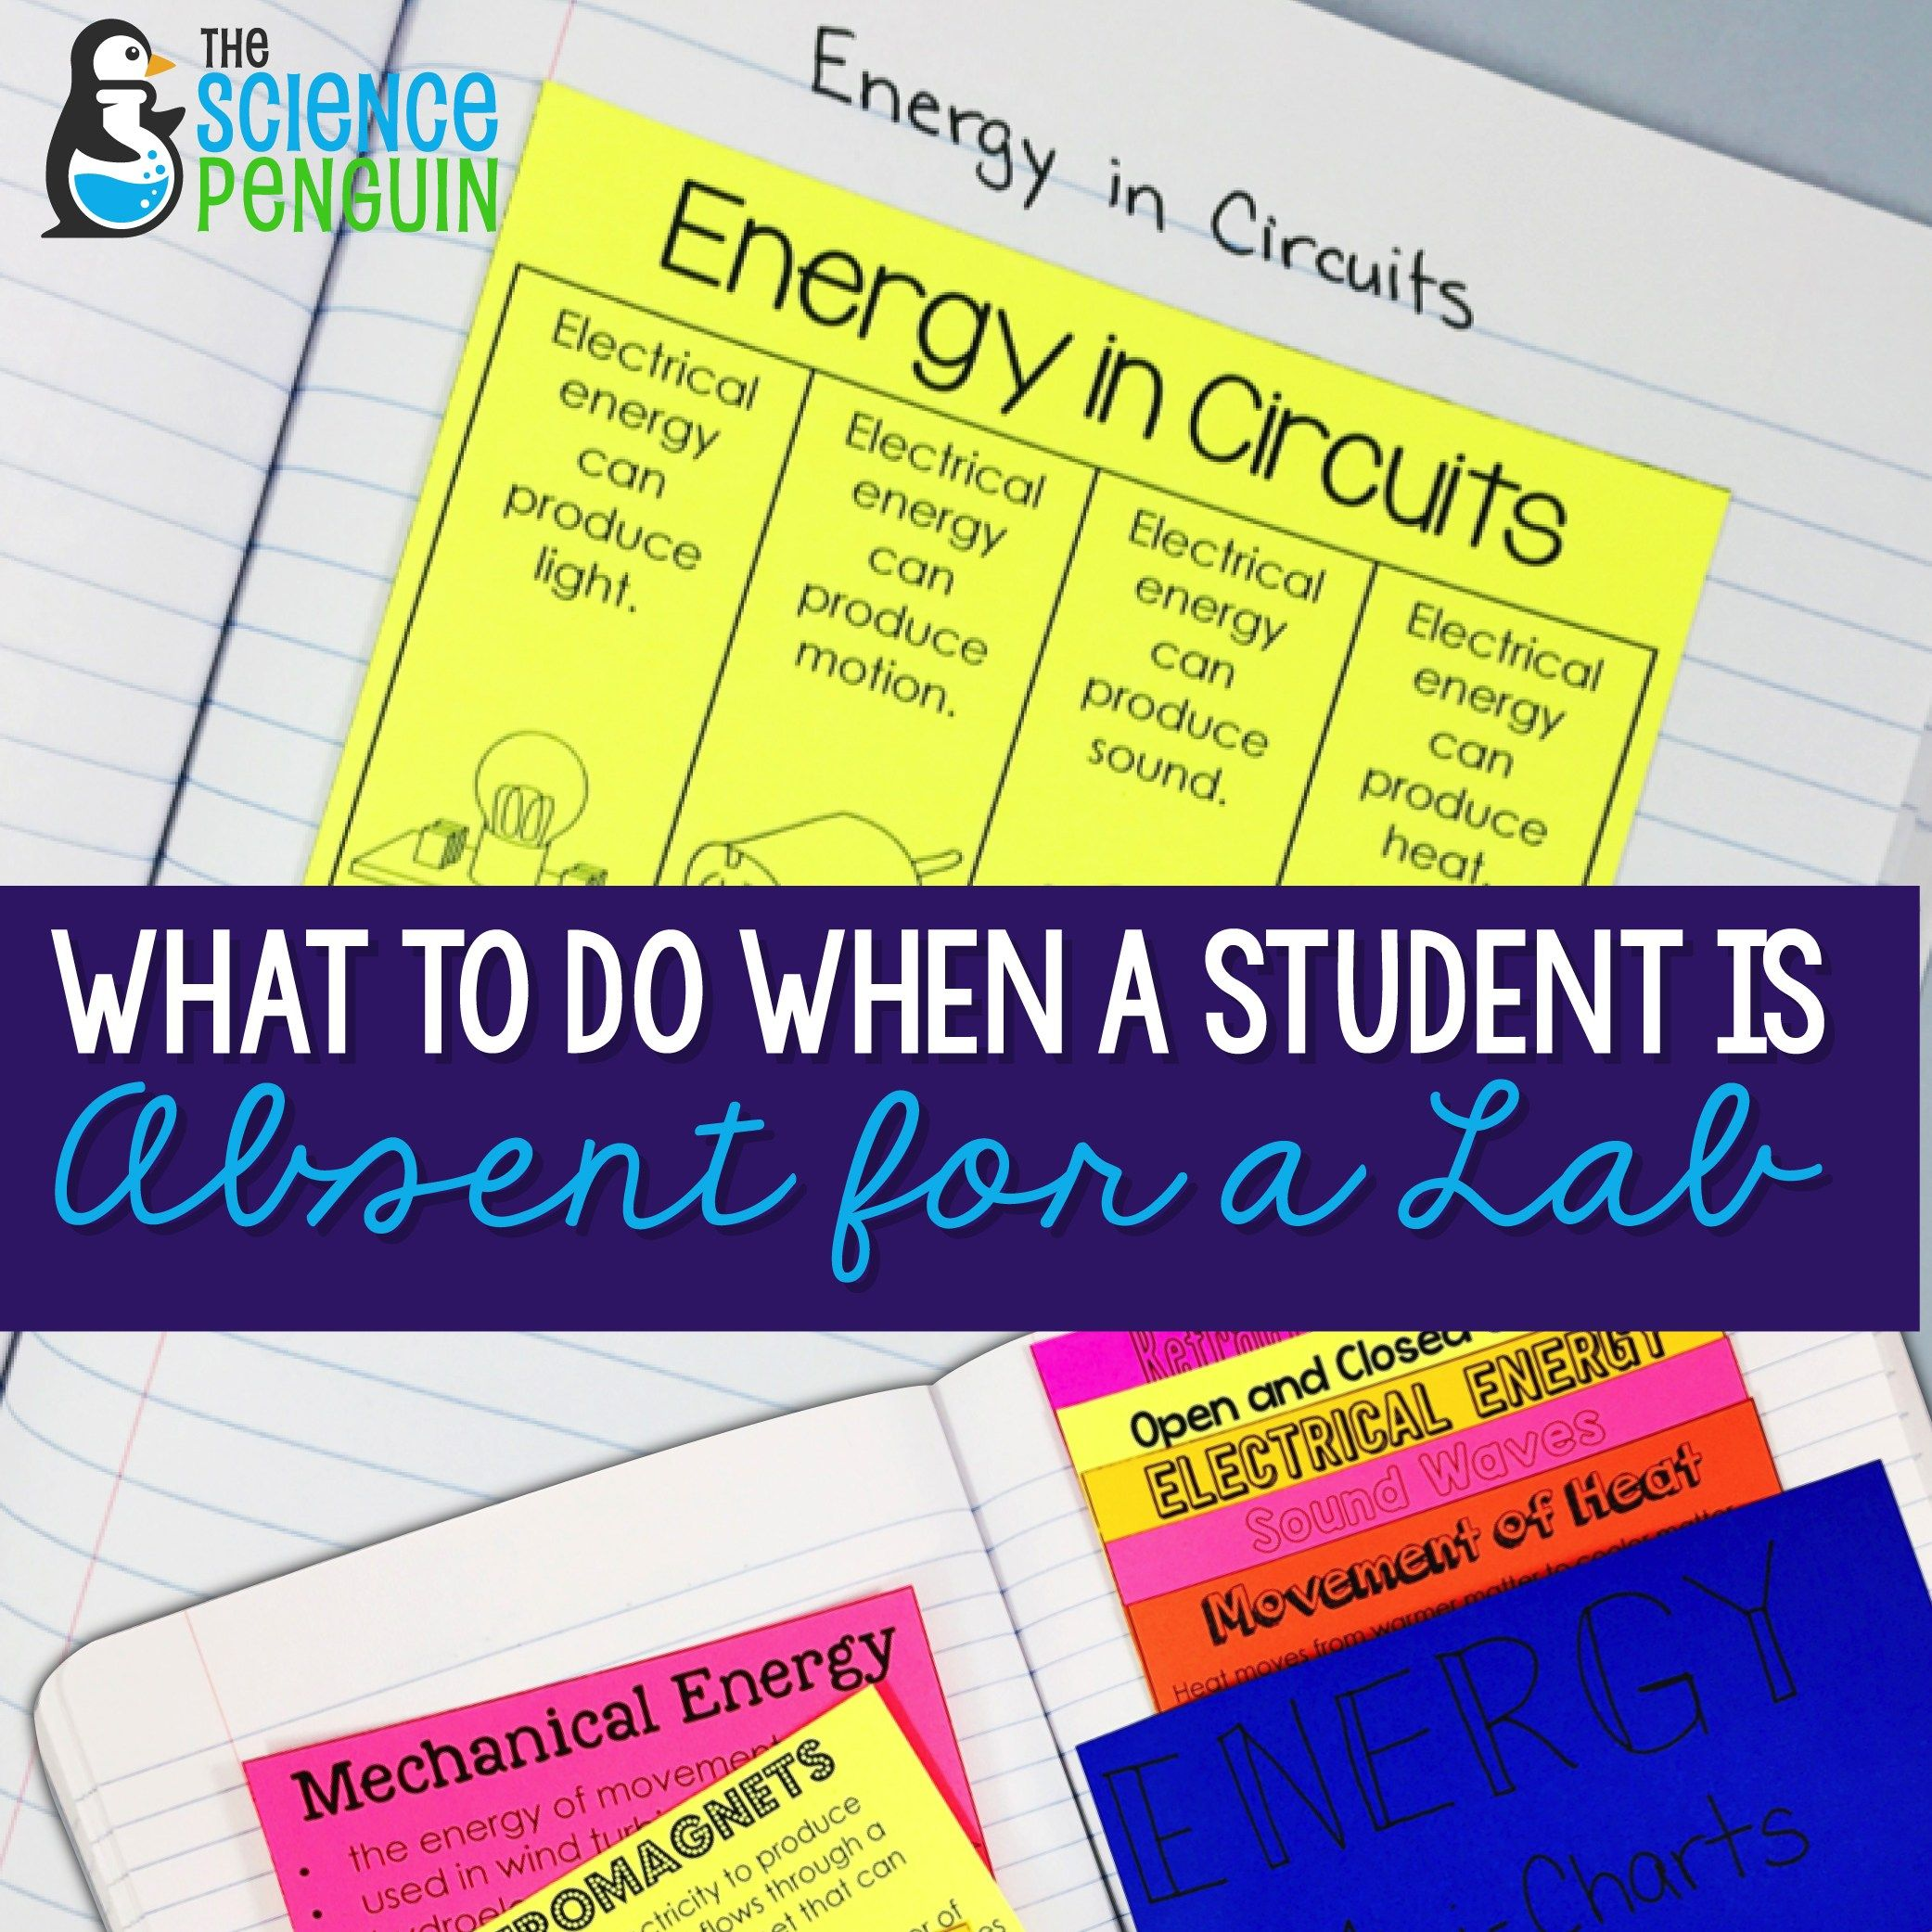 What To Do When A Student Is Absent For A Lab